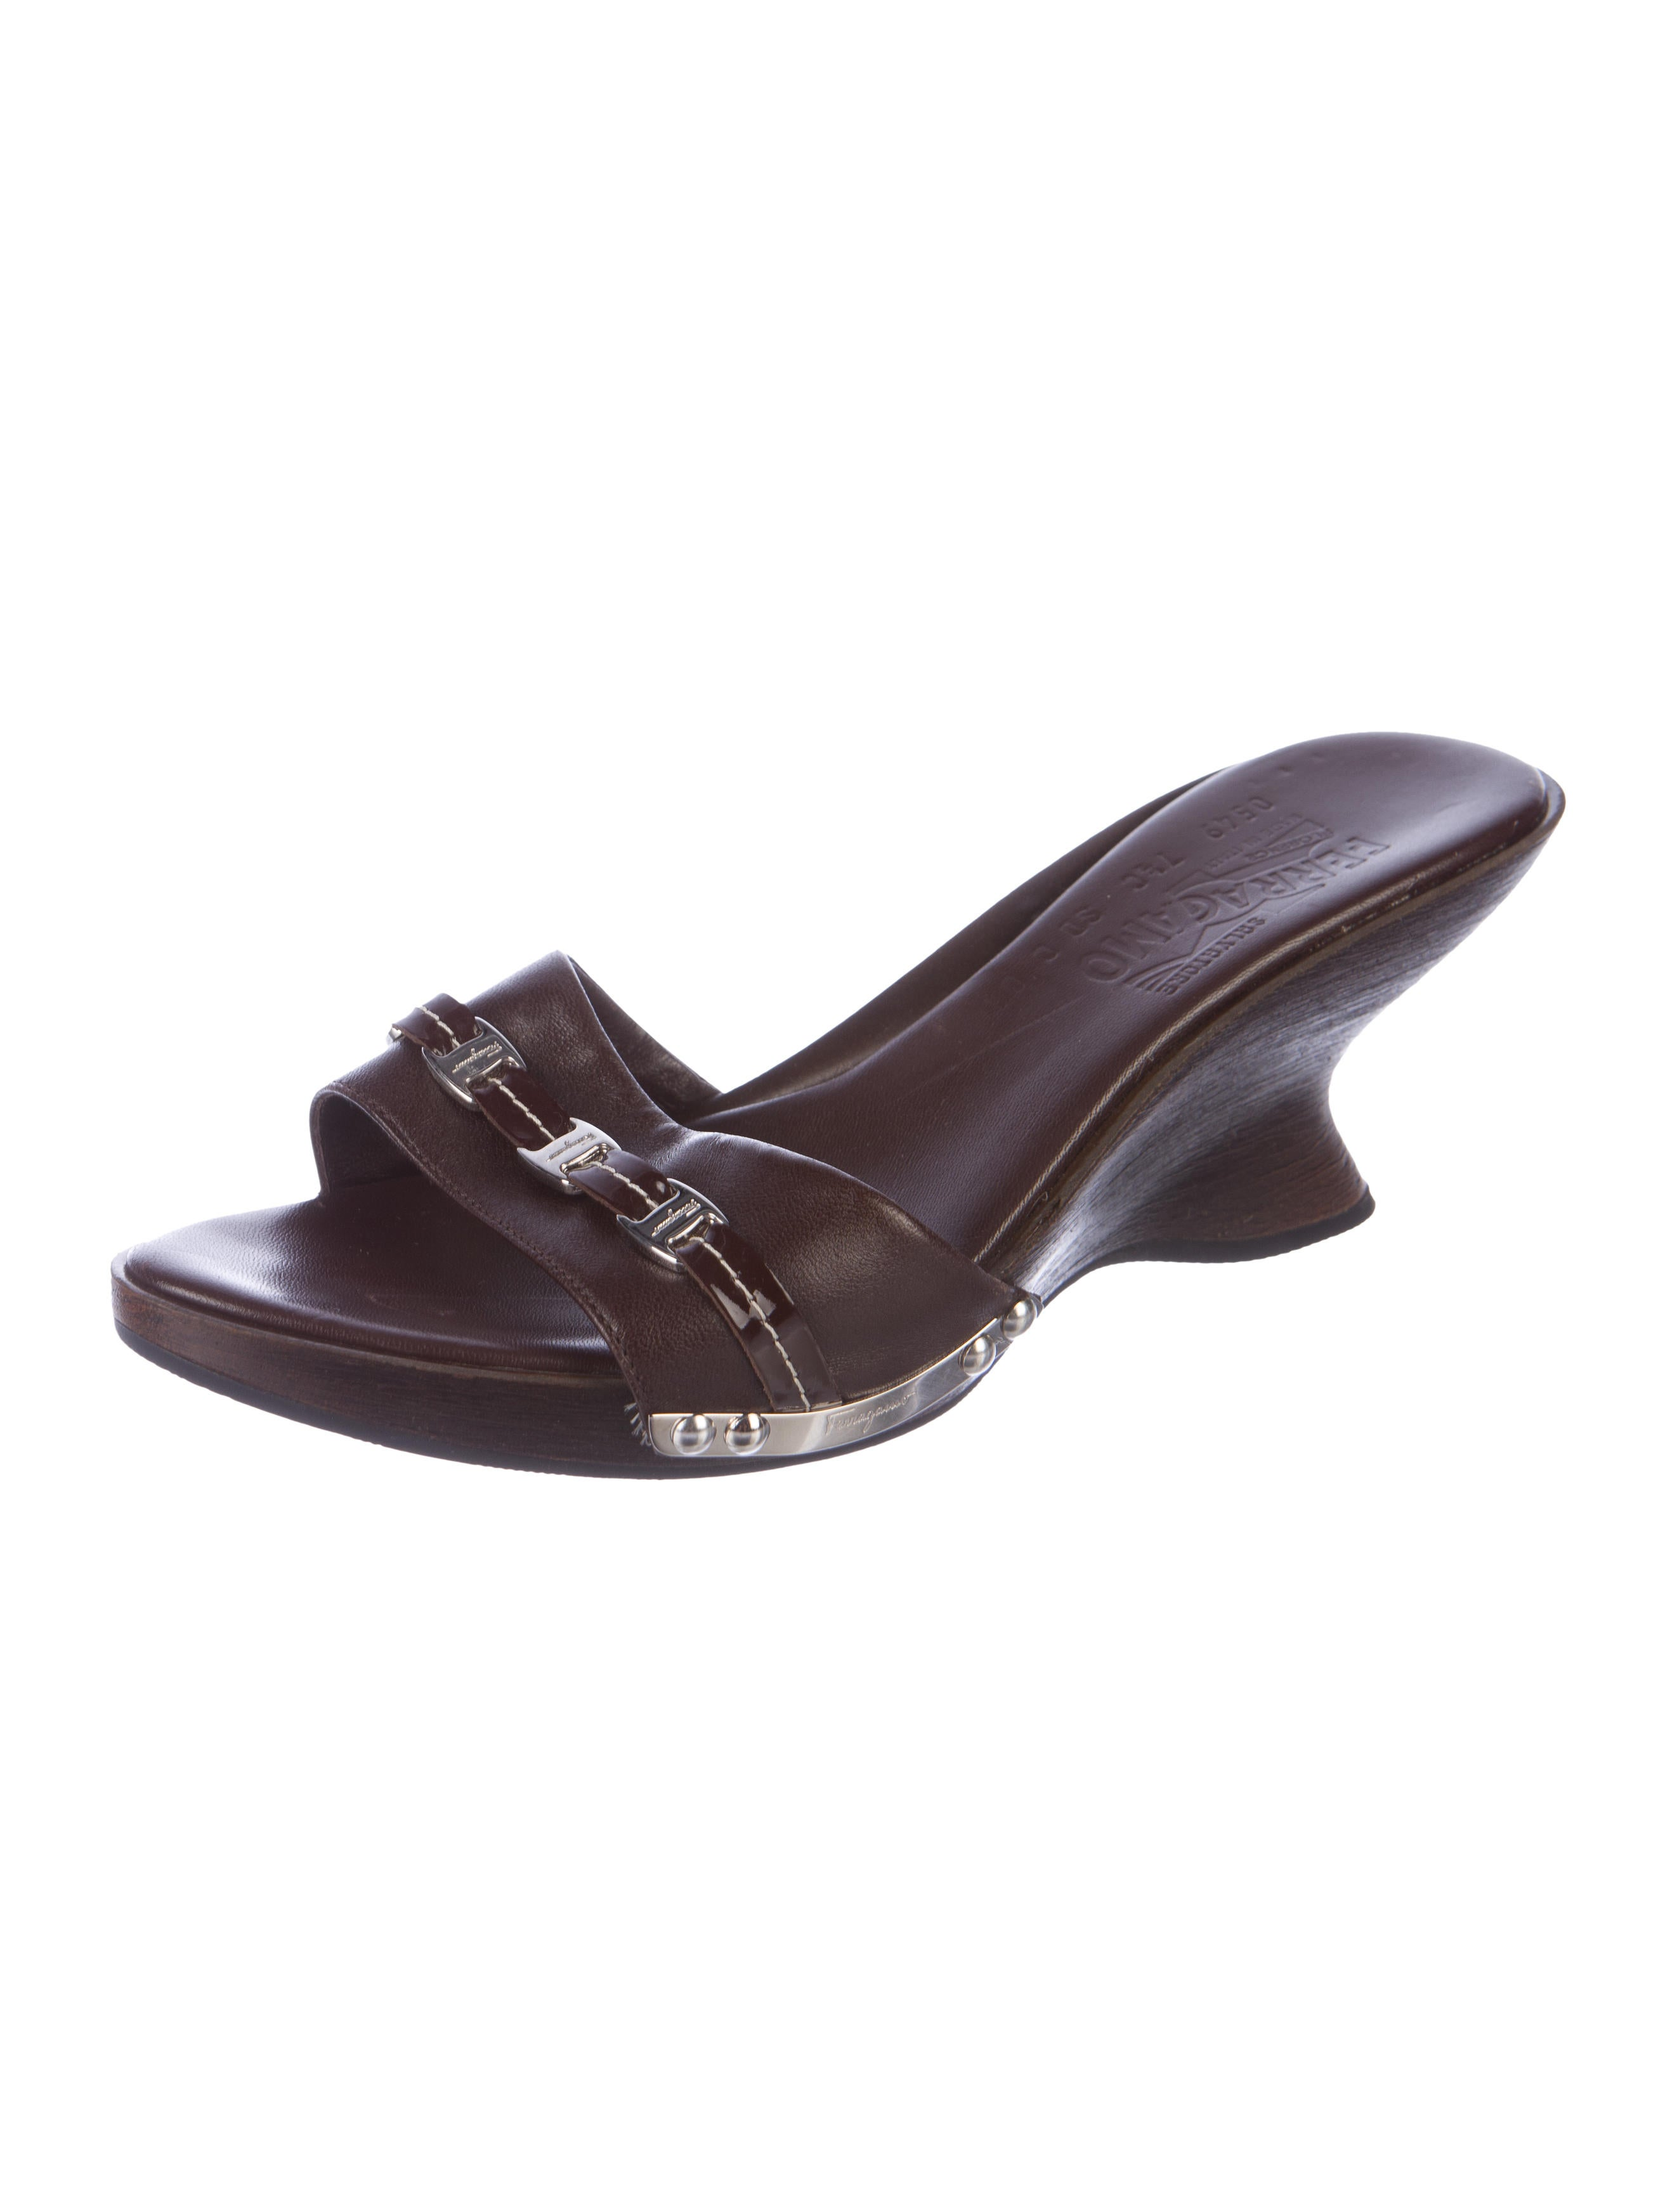 footlocker finishline cheap online new styles sale online Salvatore Ferragamo Caterina Leather Wedges cheap shop buy cheap tumblr sast for sale jMVsqwMSHq